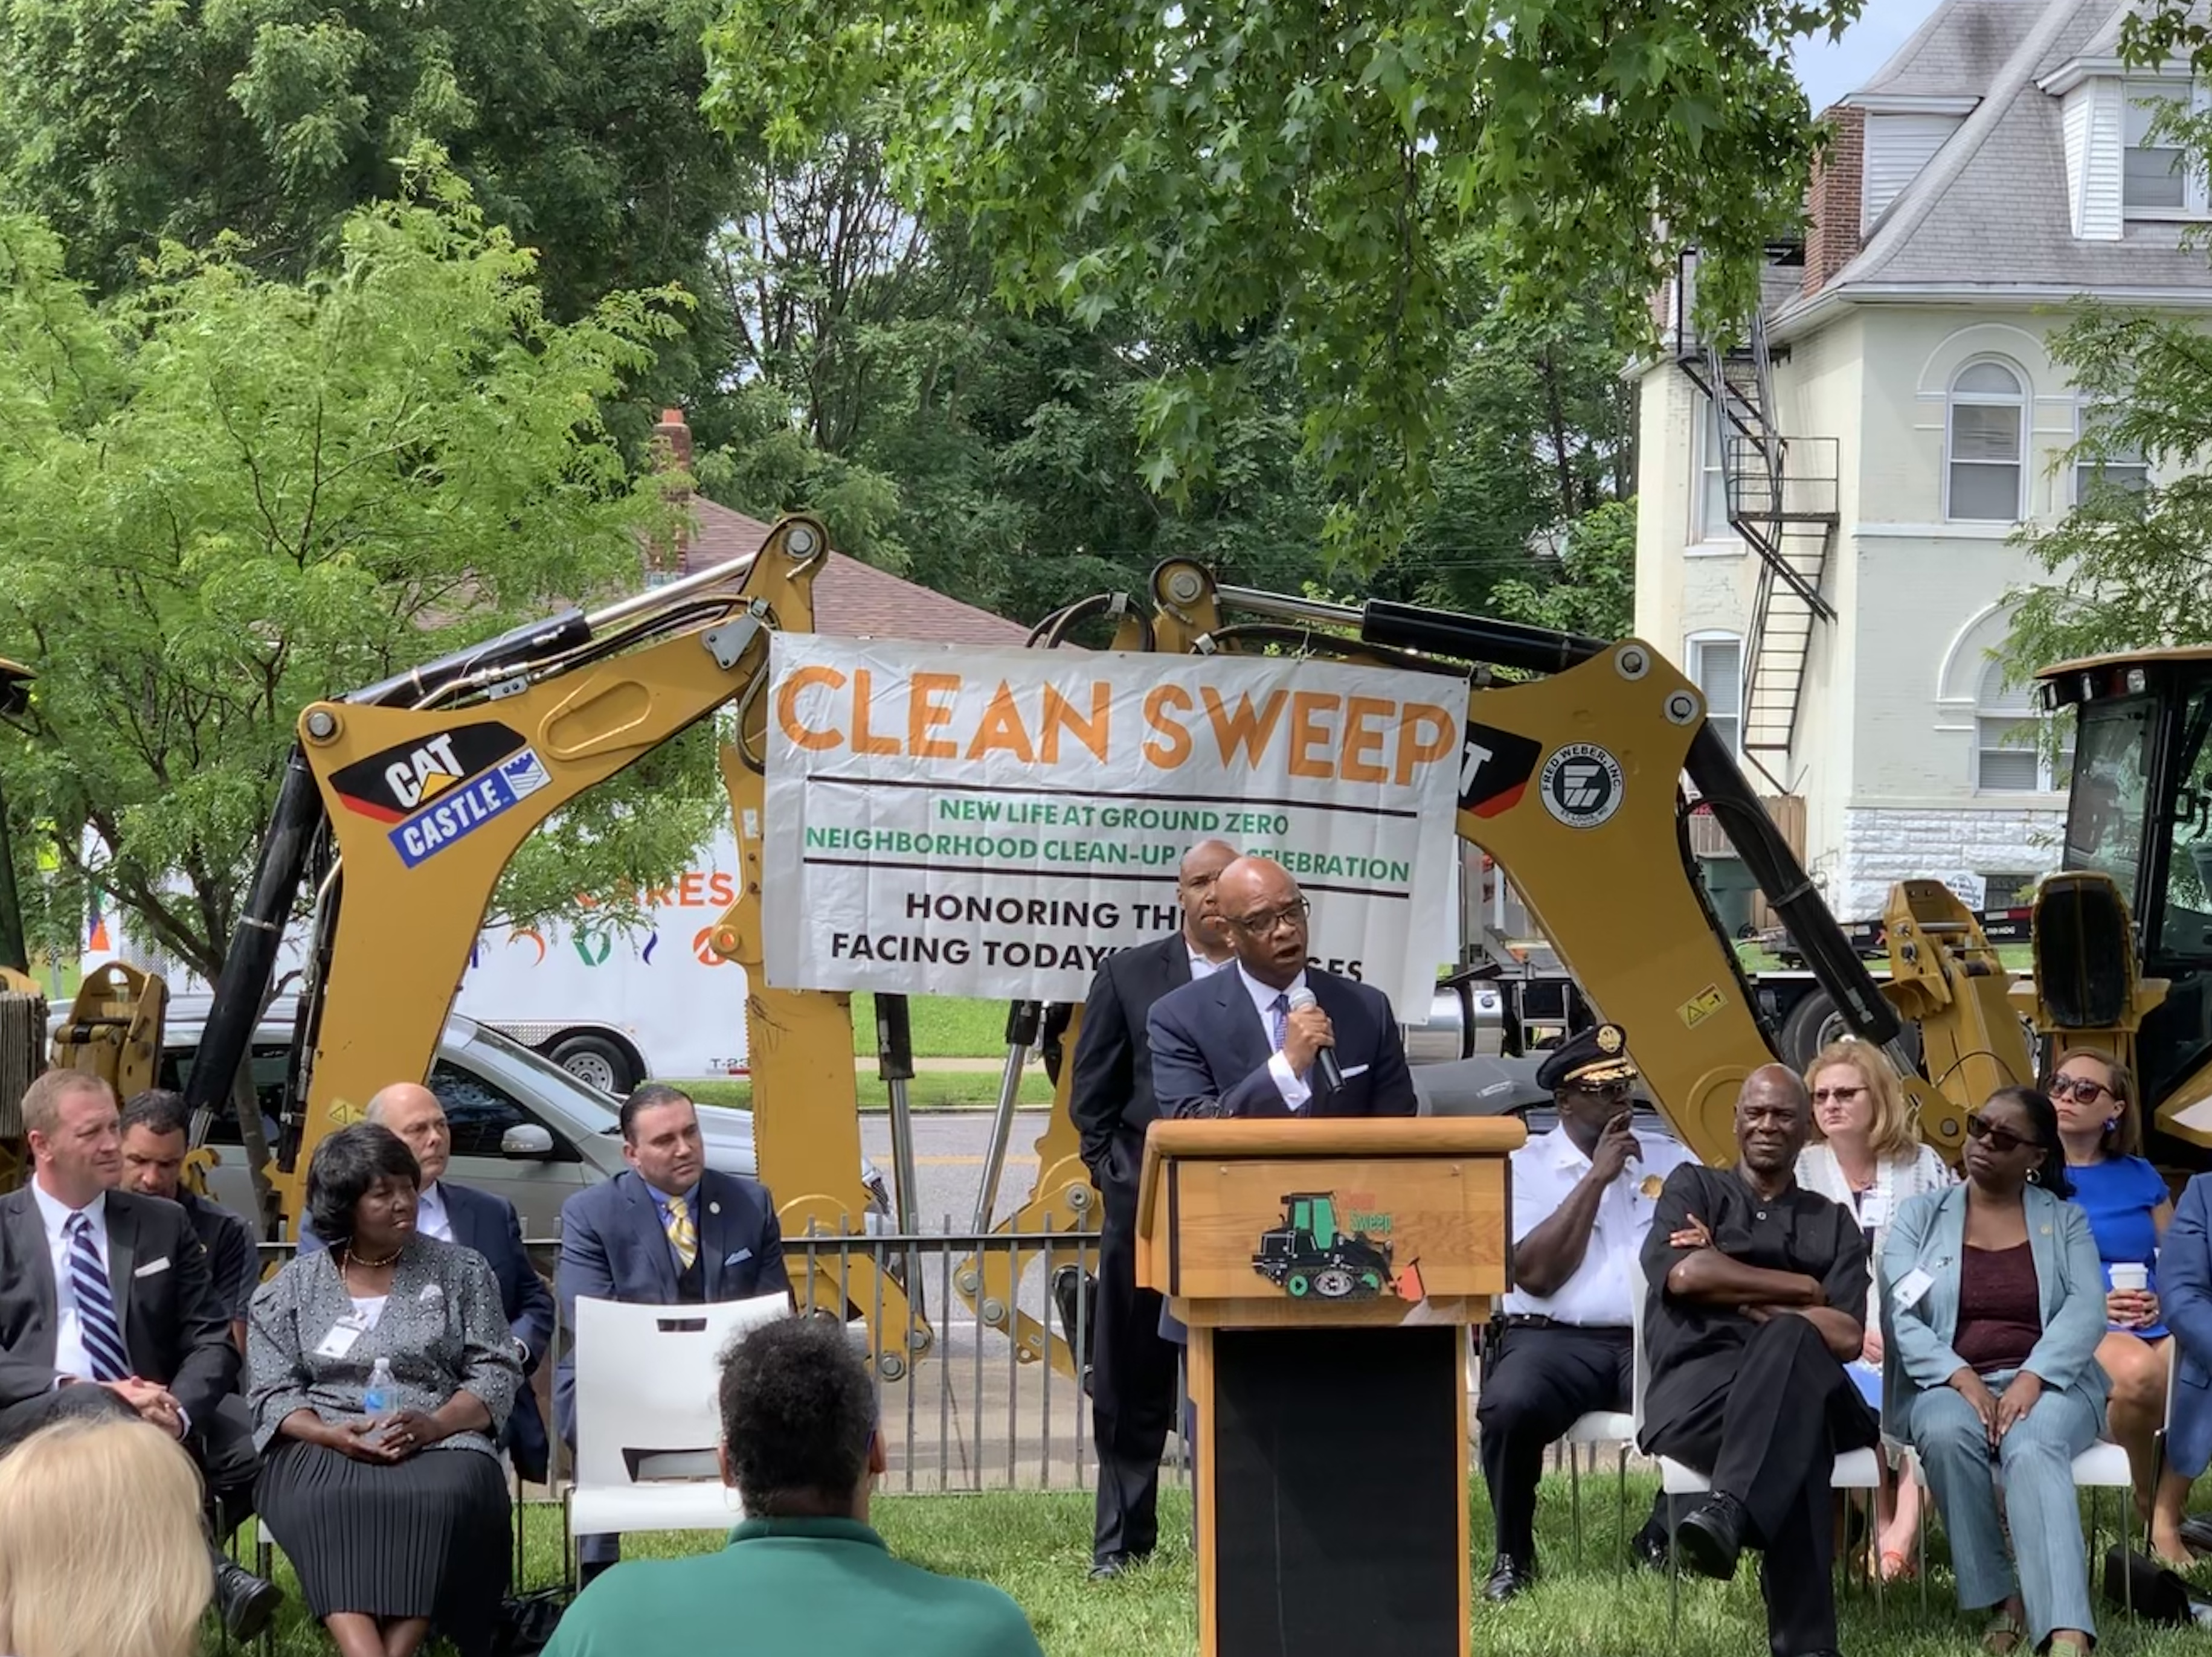 Operation Clean Sweep Press Conference